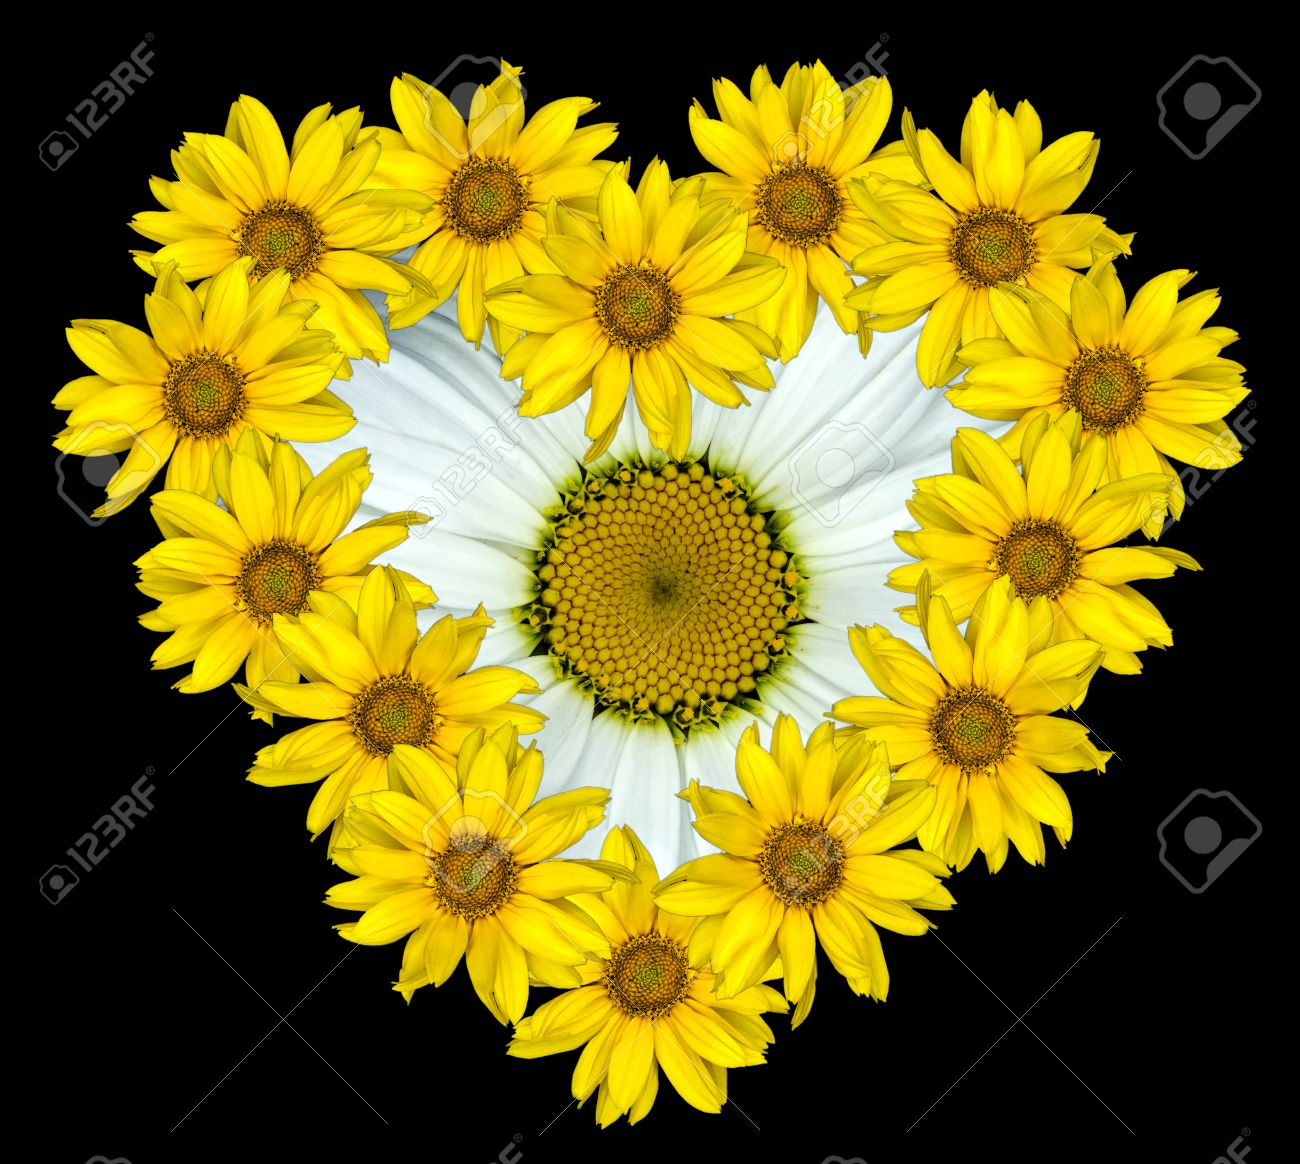 Heart of yellow flowers of decorative sunflowers helinthus and heart of yellow flowers of decorative sunflowers helinthus and white daisy flower inside isolated on black mightylinksfo